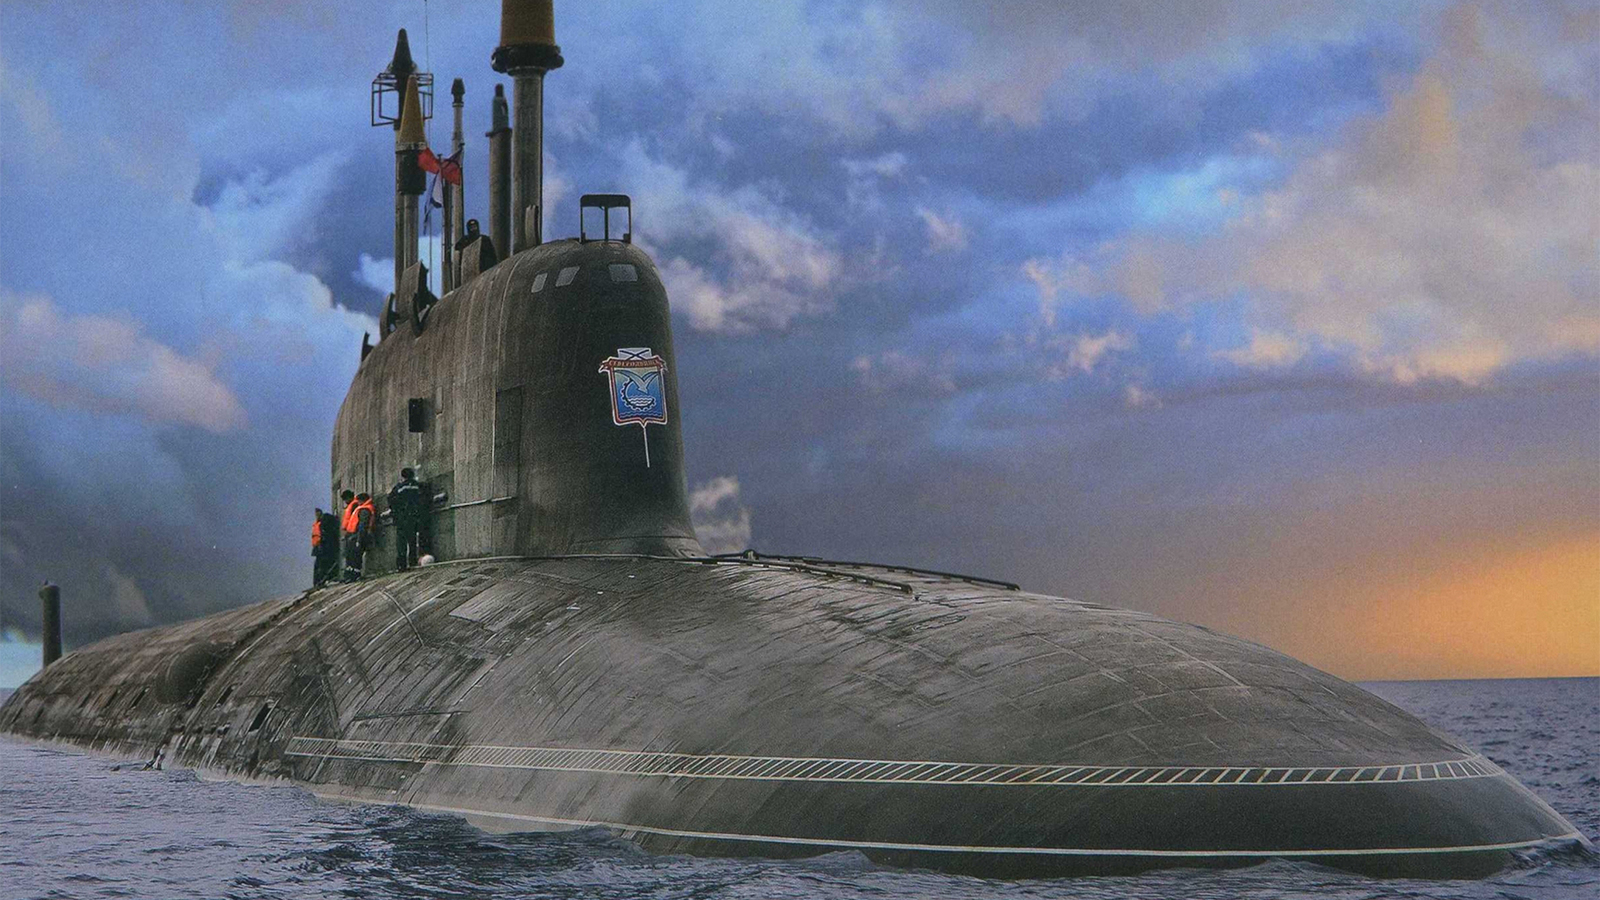 New Naval Sonar System to Allow Russia to 'Hear' Enemy Subs Via Satellite Network